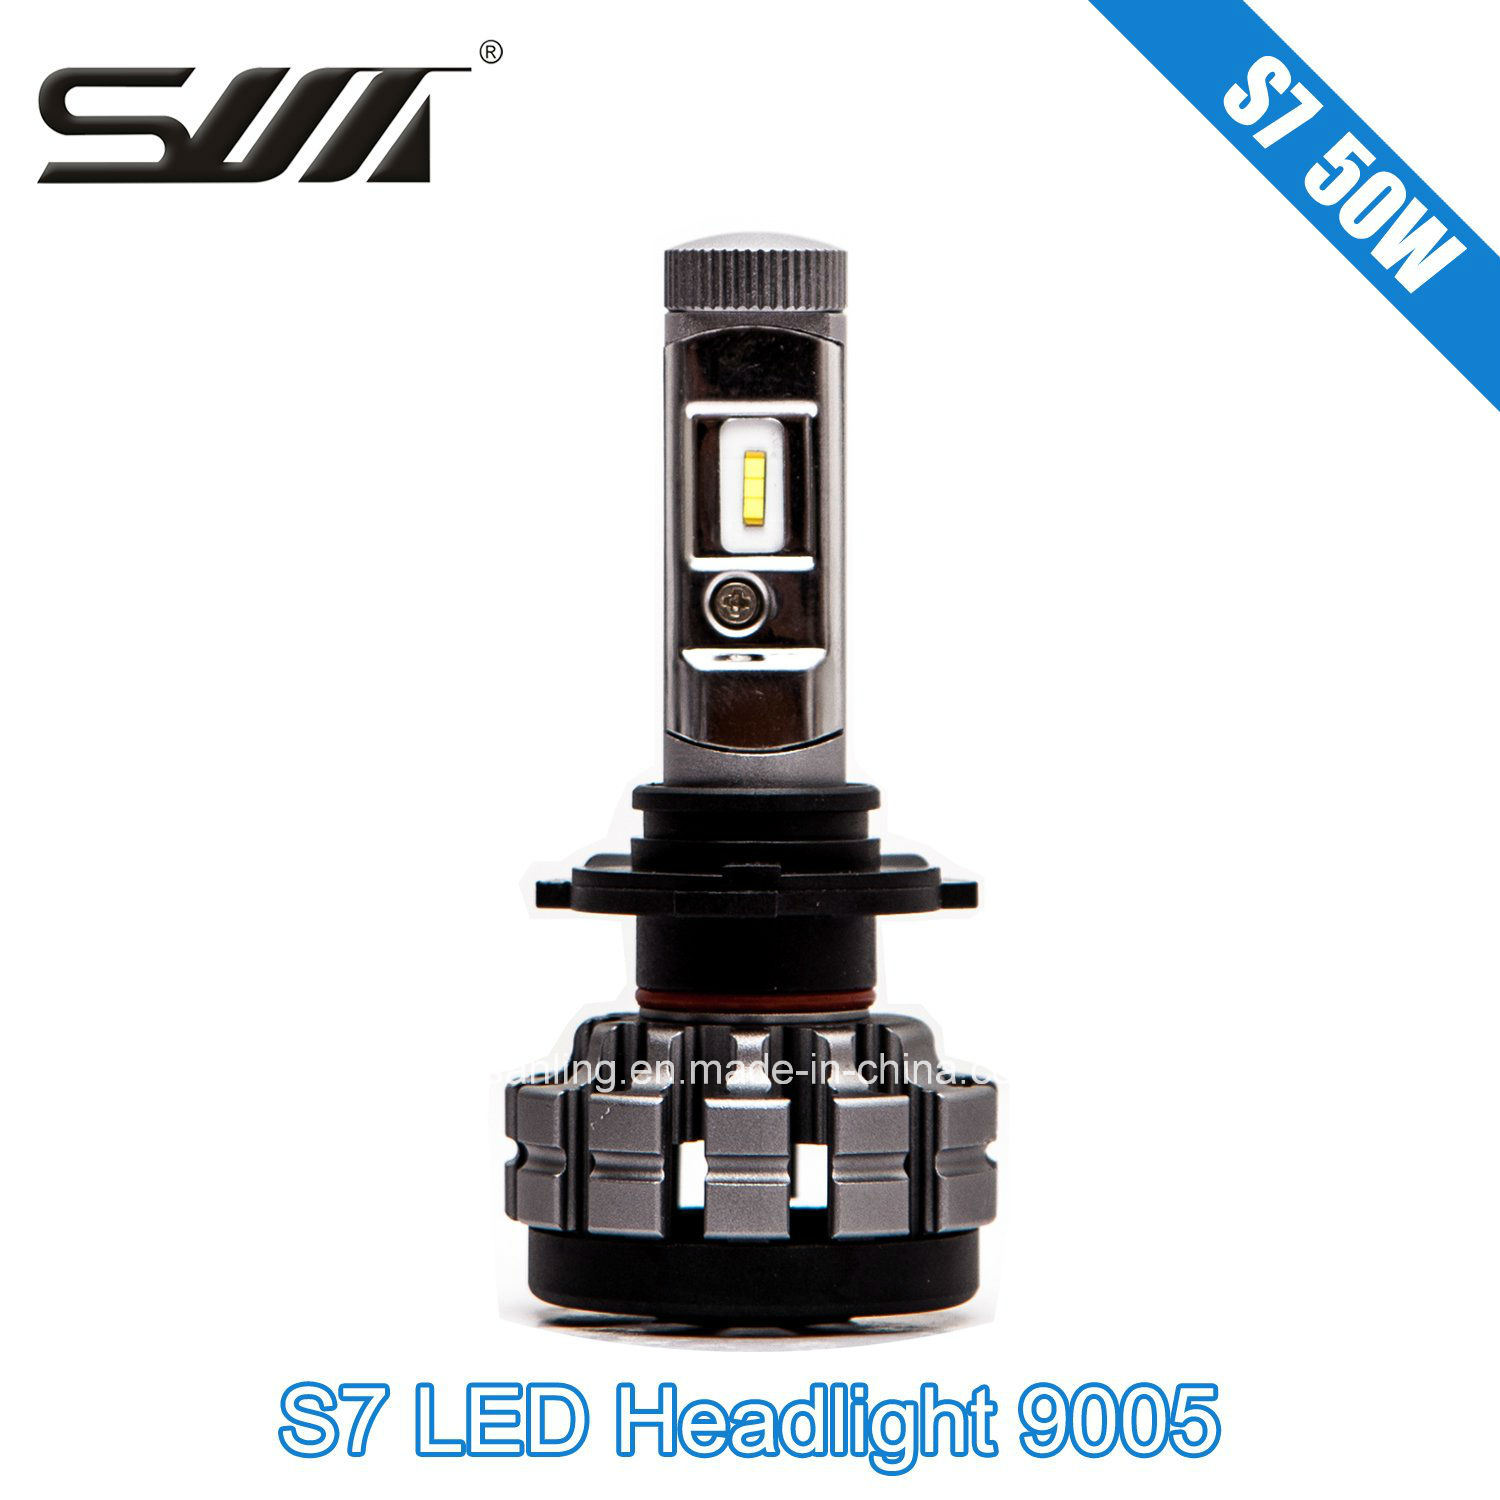 2017 New Design S7 Car Light 9005 LED Headlight